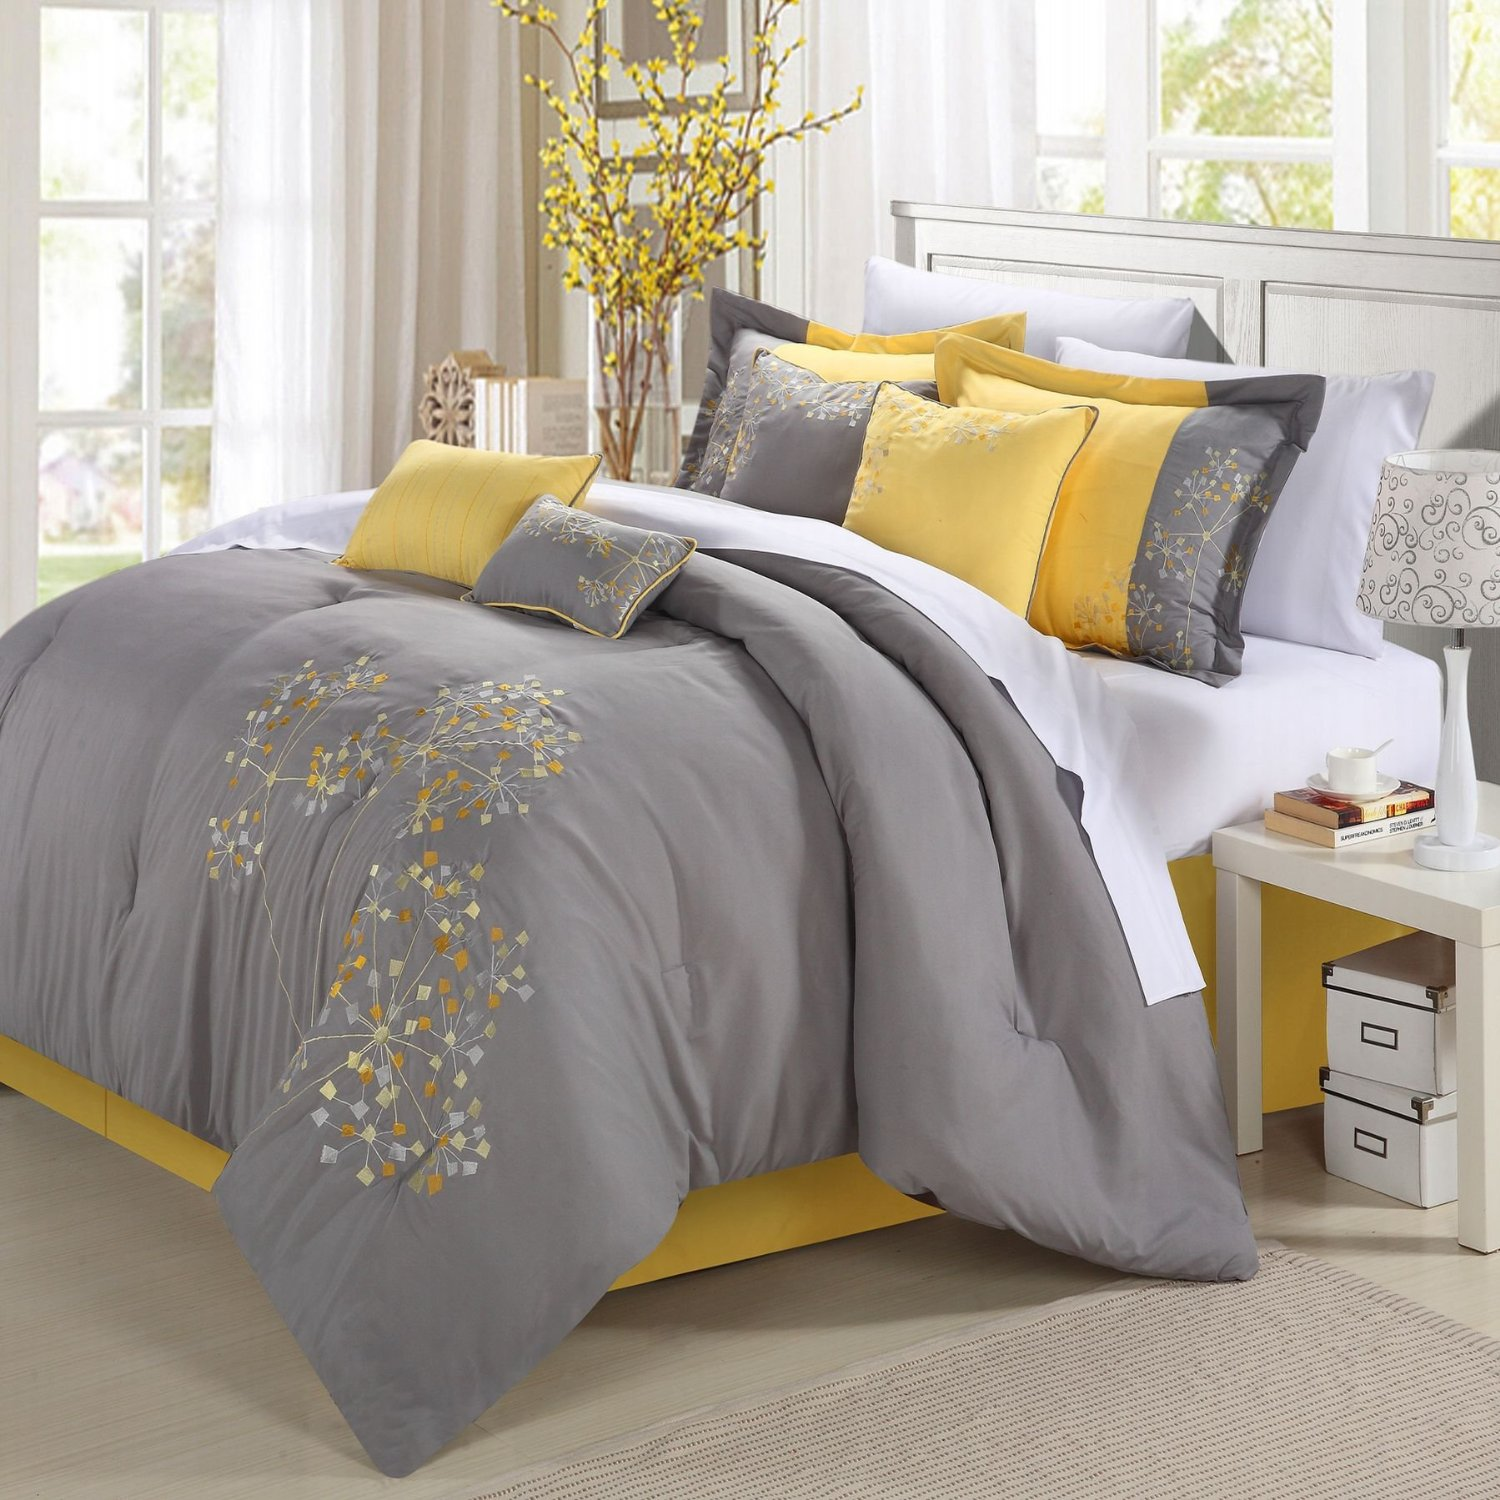 Geo Floral Grey And Yellow Bedding